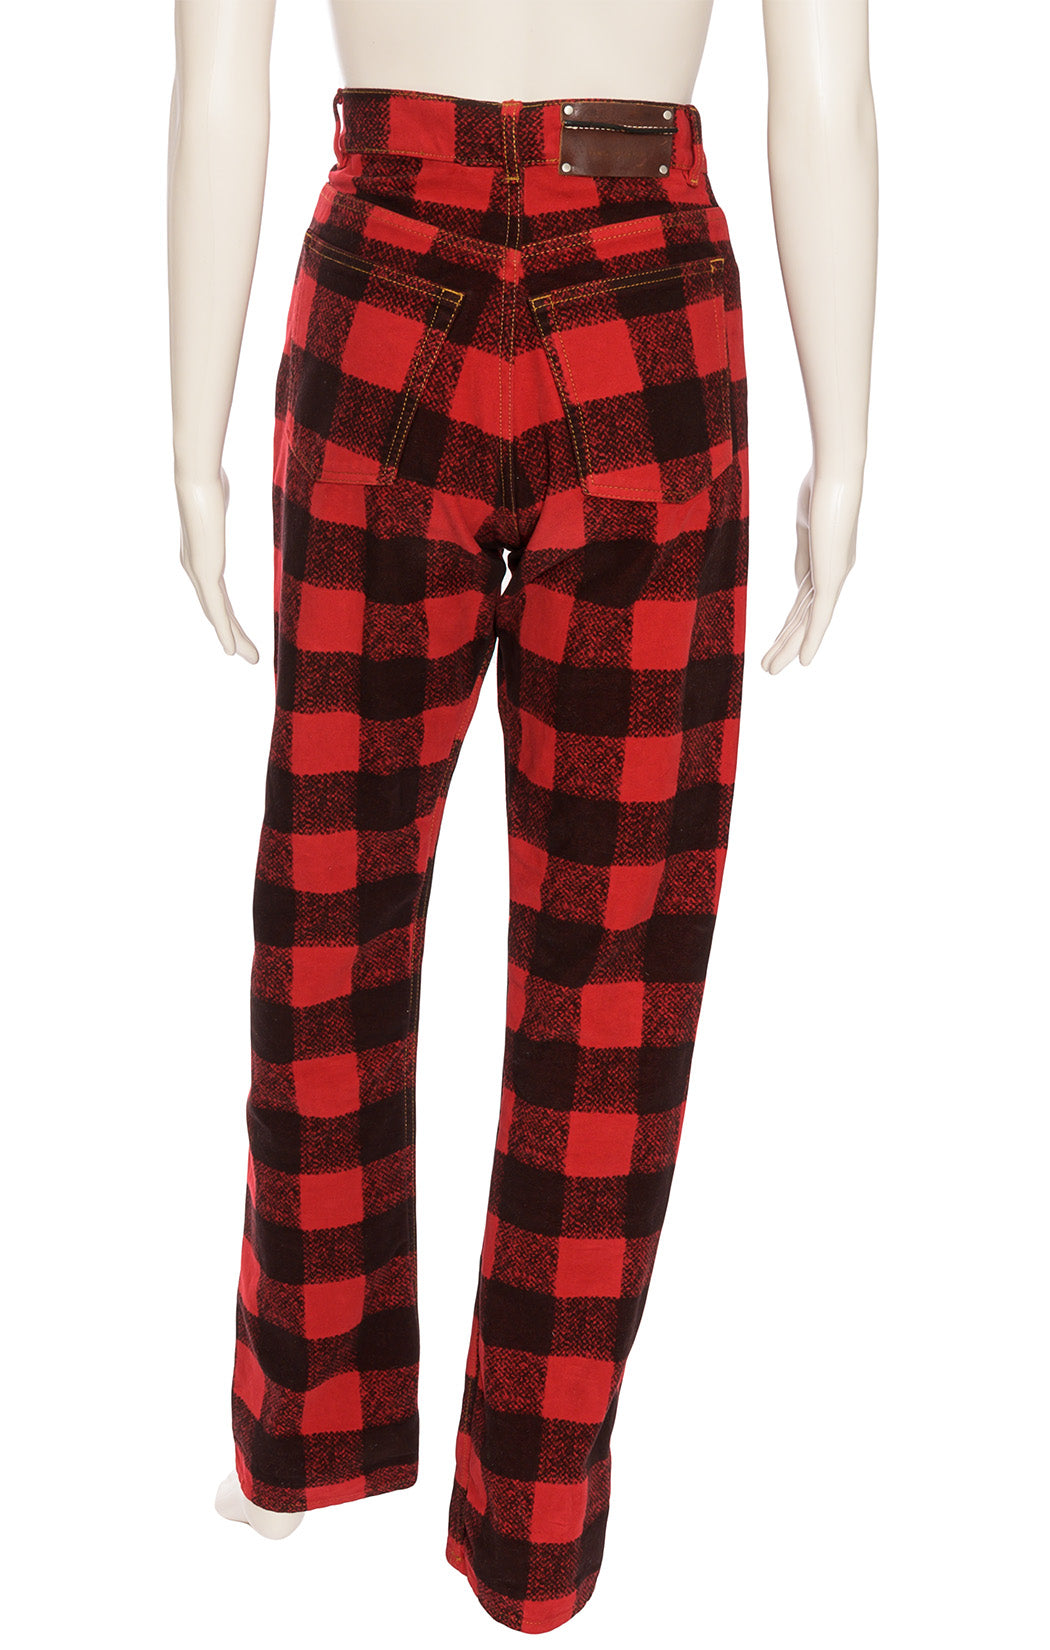 Red plaid five pocket jean style pants; fabric has velvet feel with button front closure